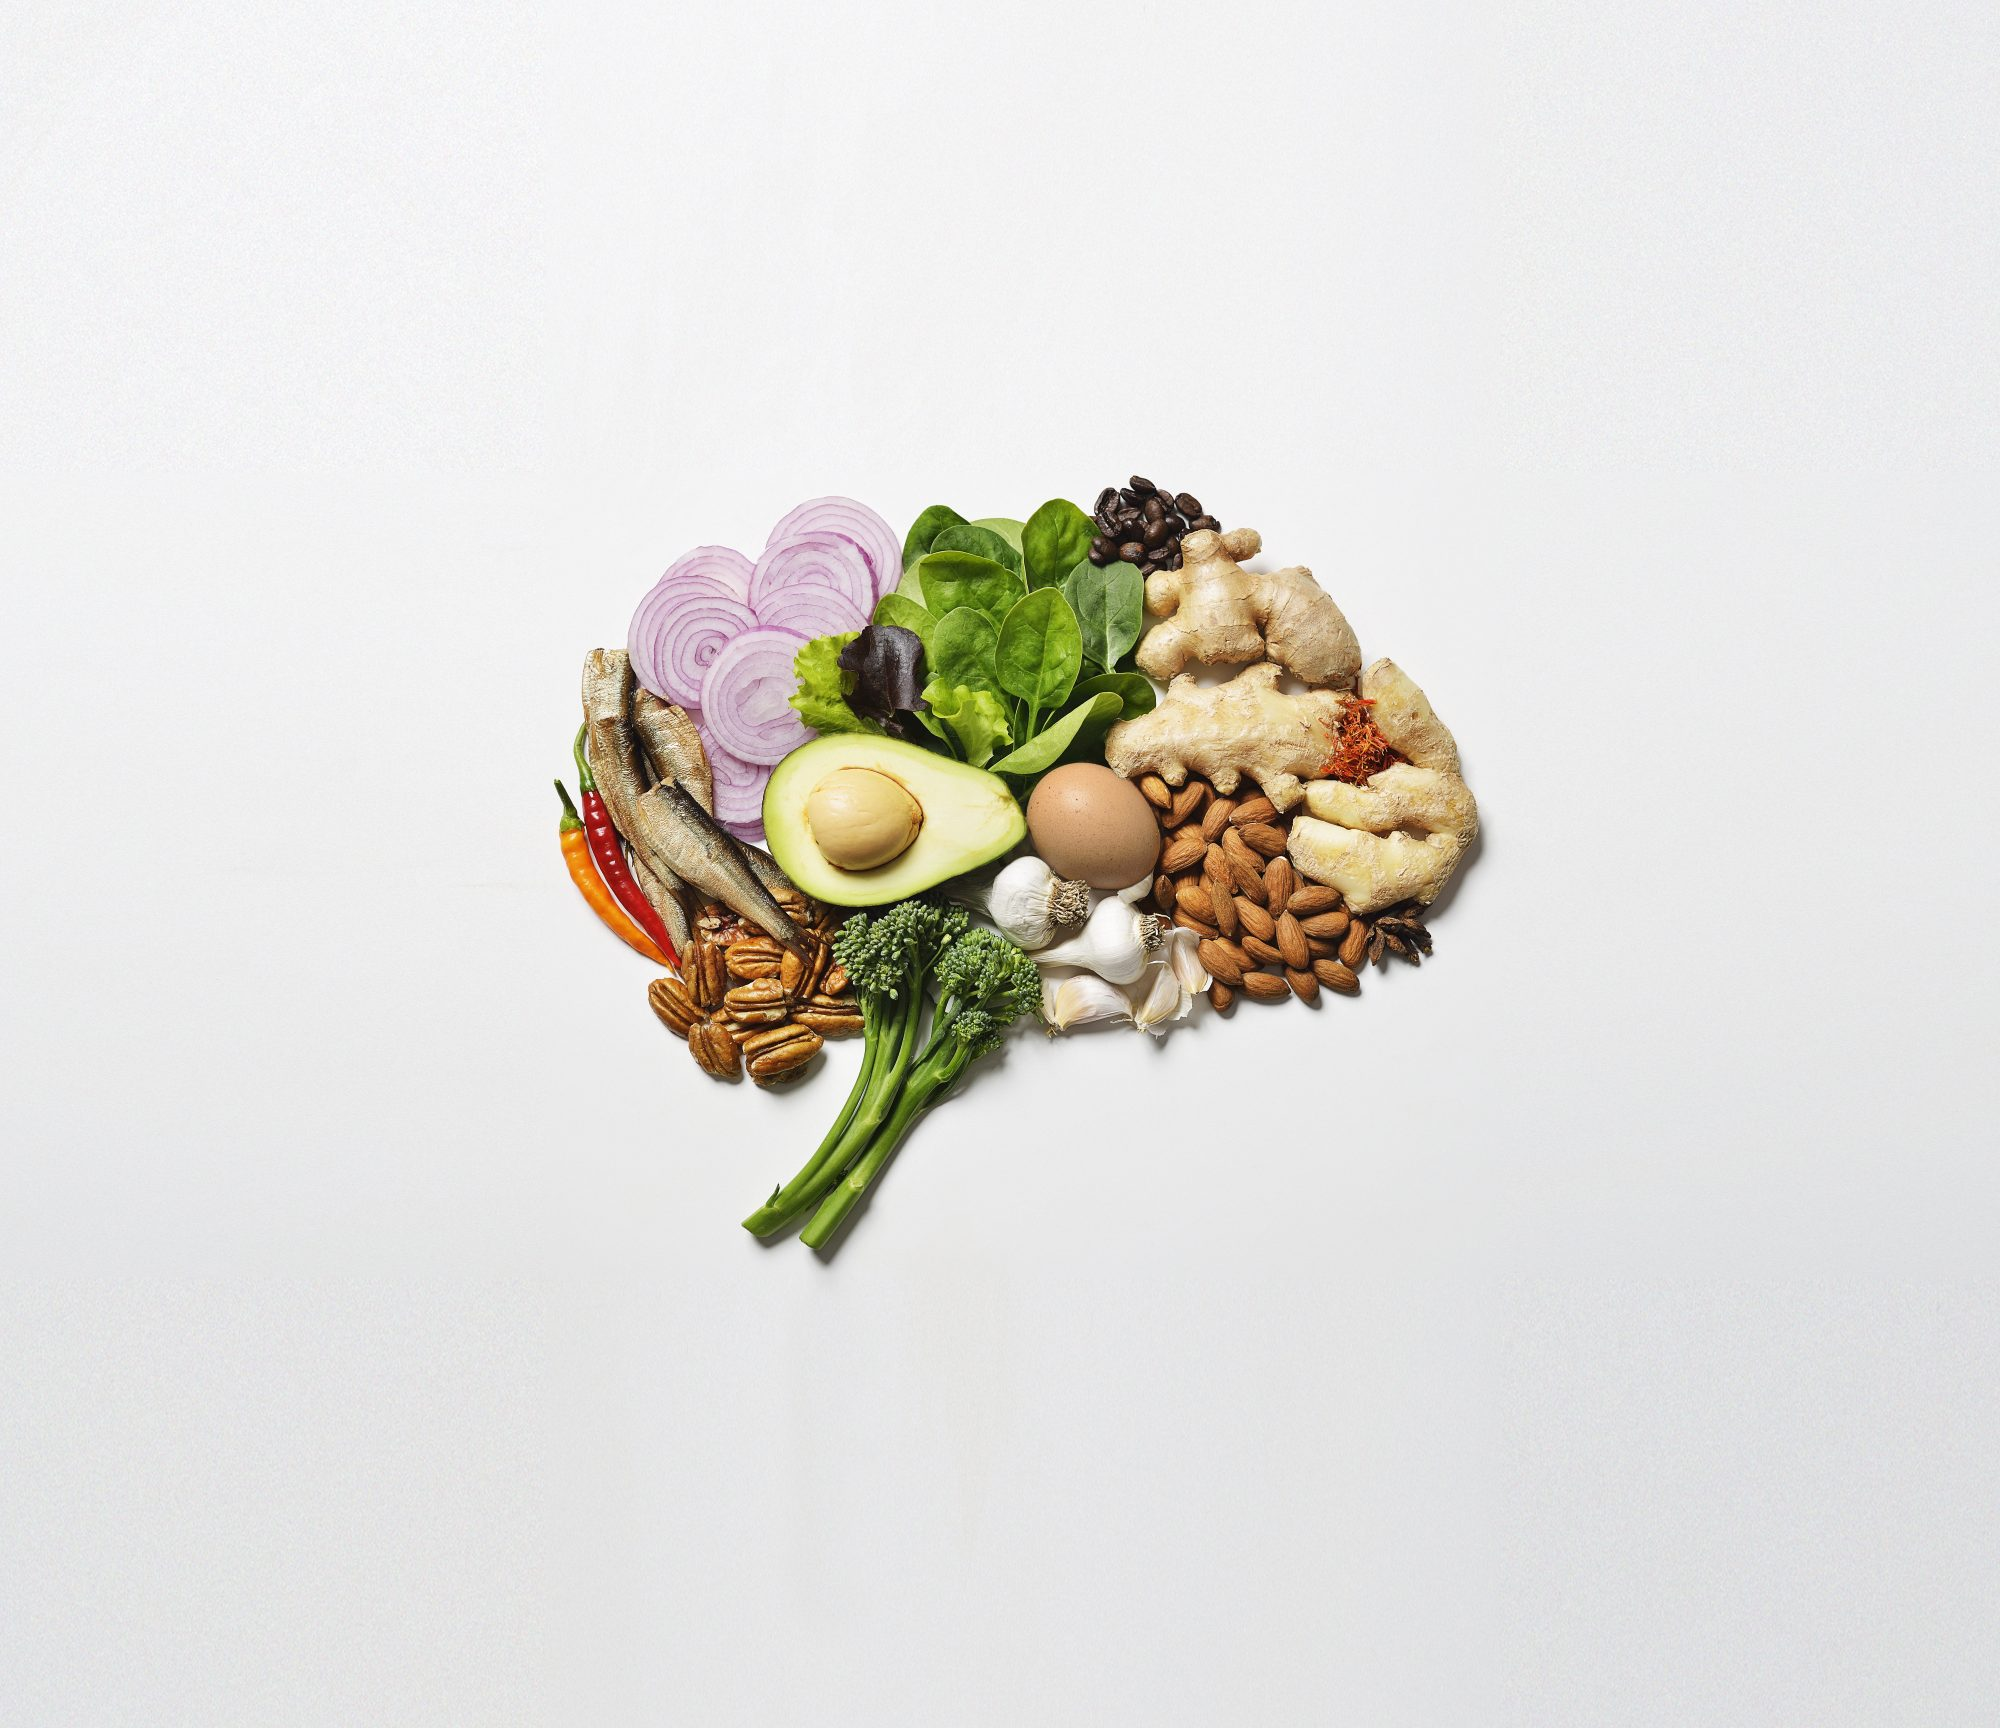 Food For The Brain: Eat This To Make You Happier